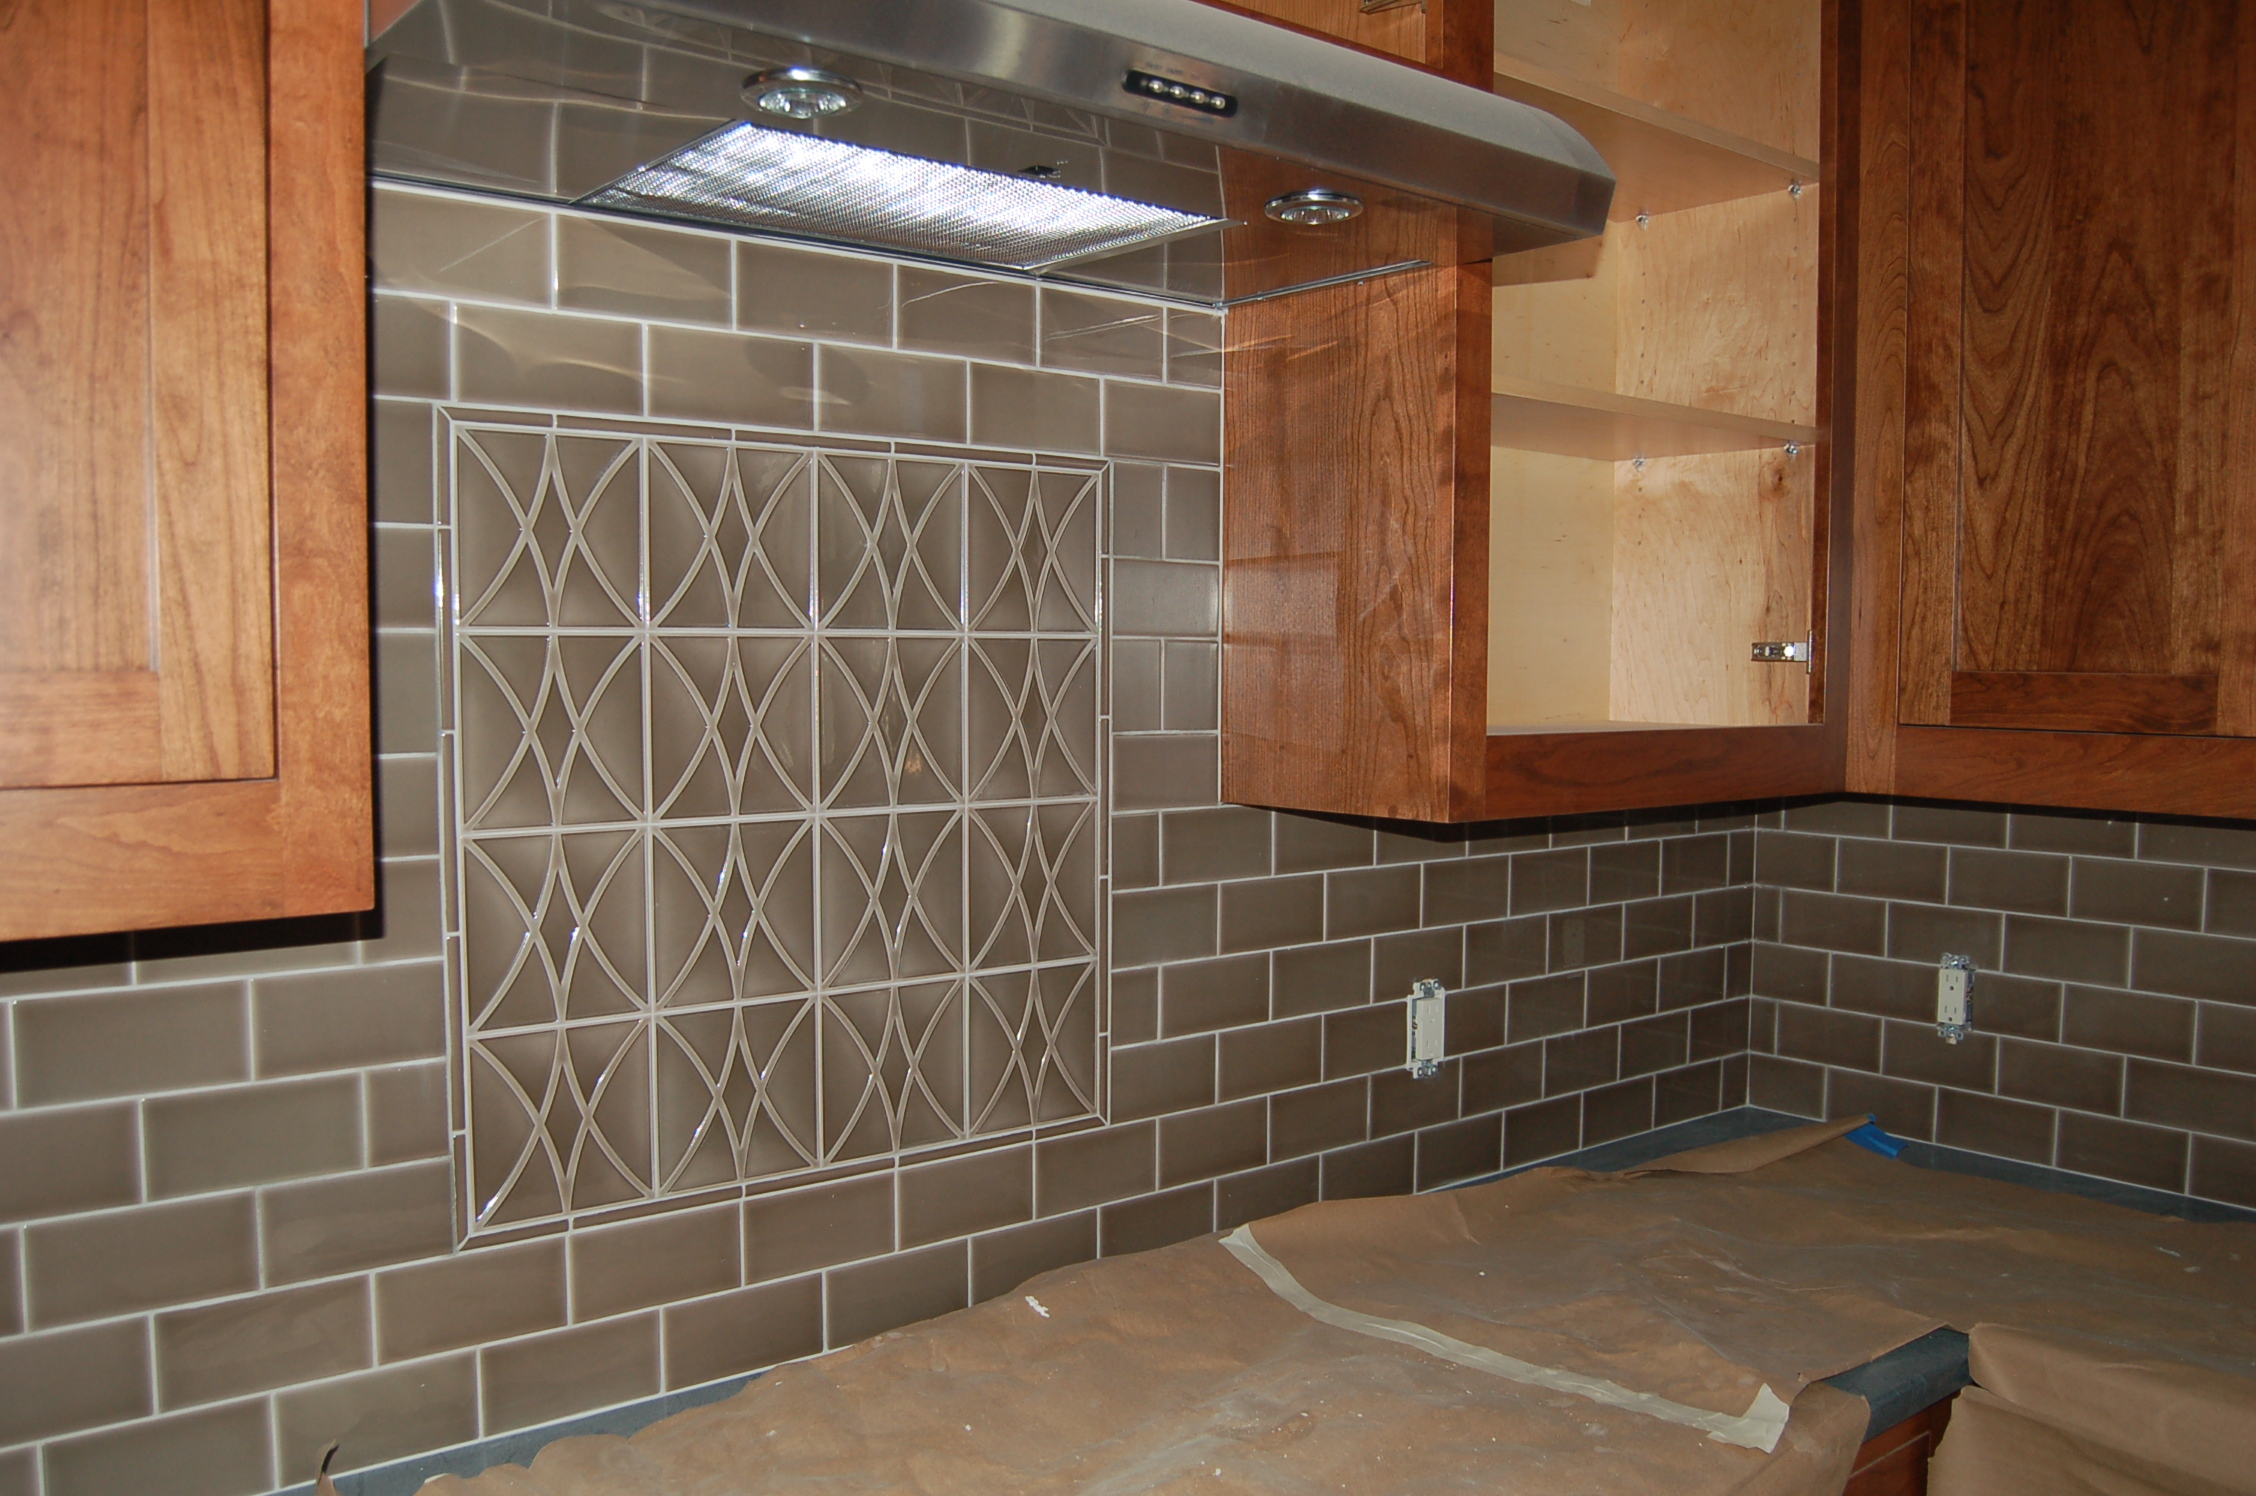 craftsman kitchen backsplash stools with back fixtures and finishes modern style home